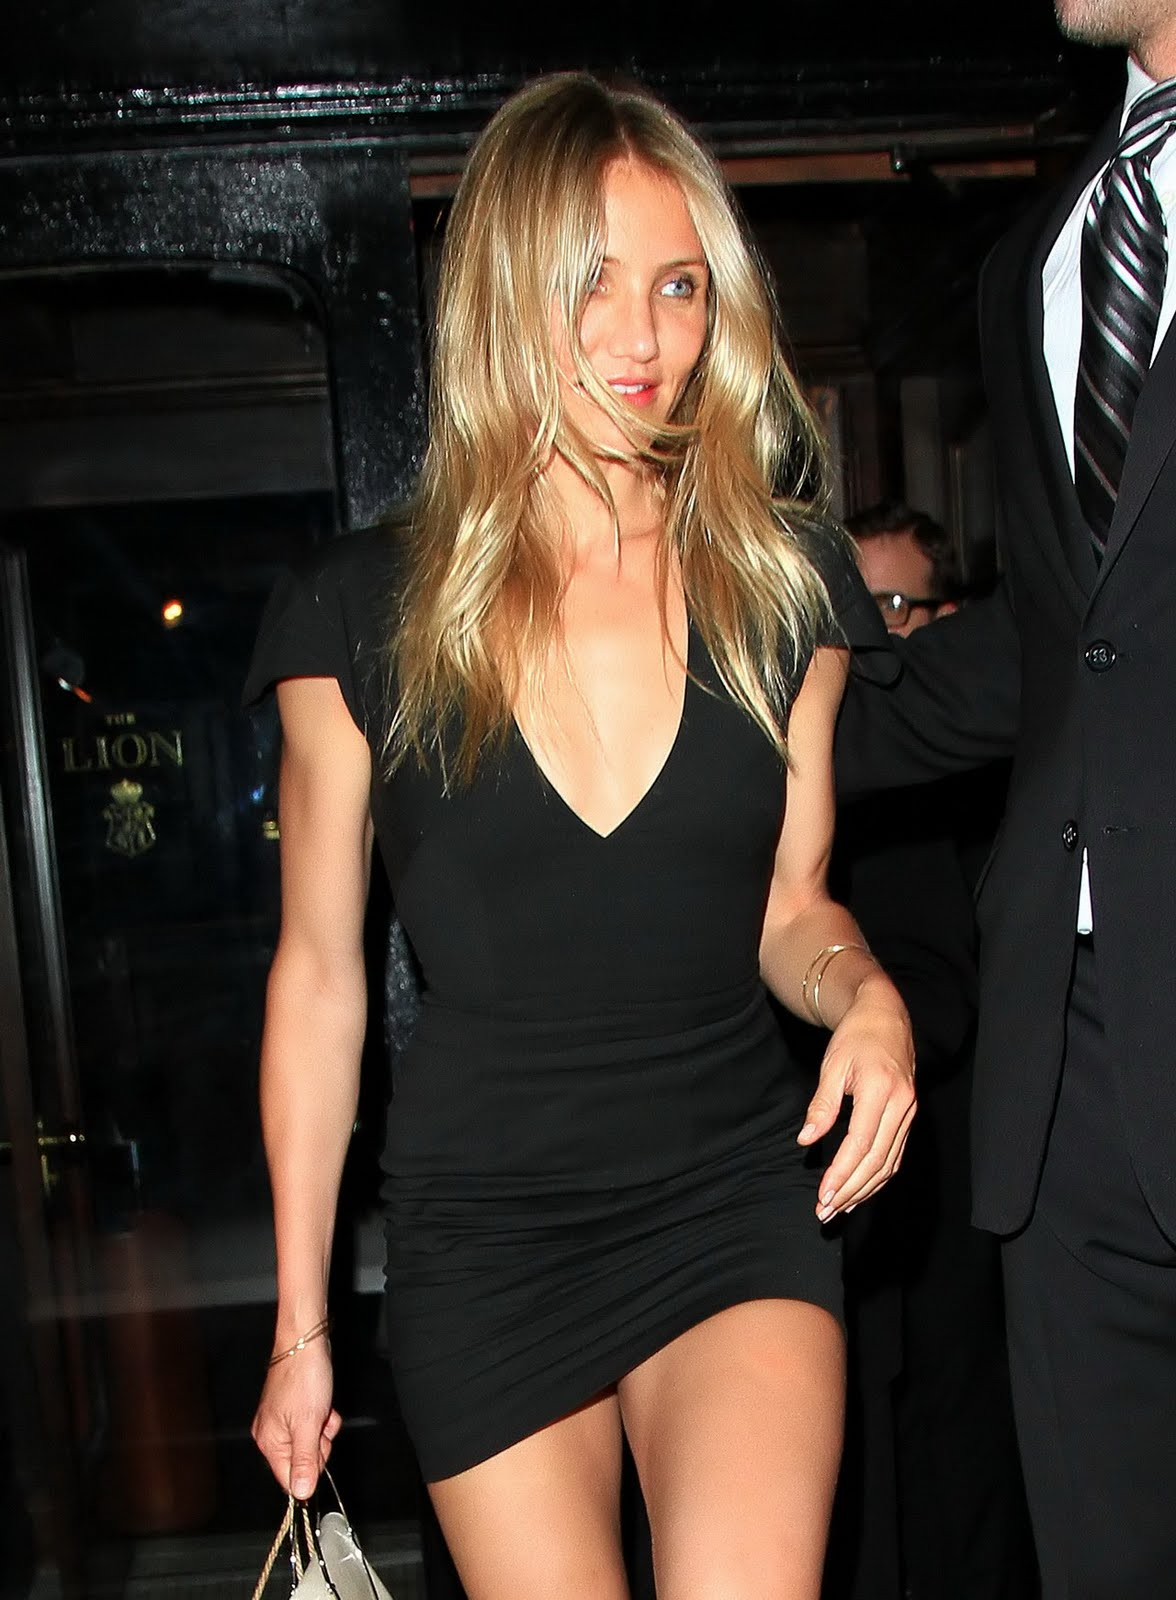 ib ijonkbojats cameron diaz out in a hot super skimpy black dress for her birthday. Black Bedroom Furniture Sets. Home Design Ideas